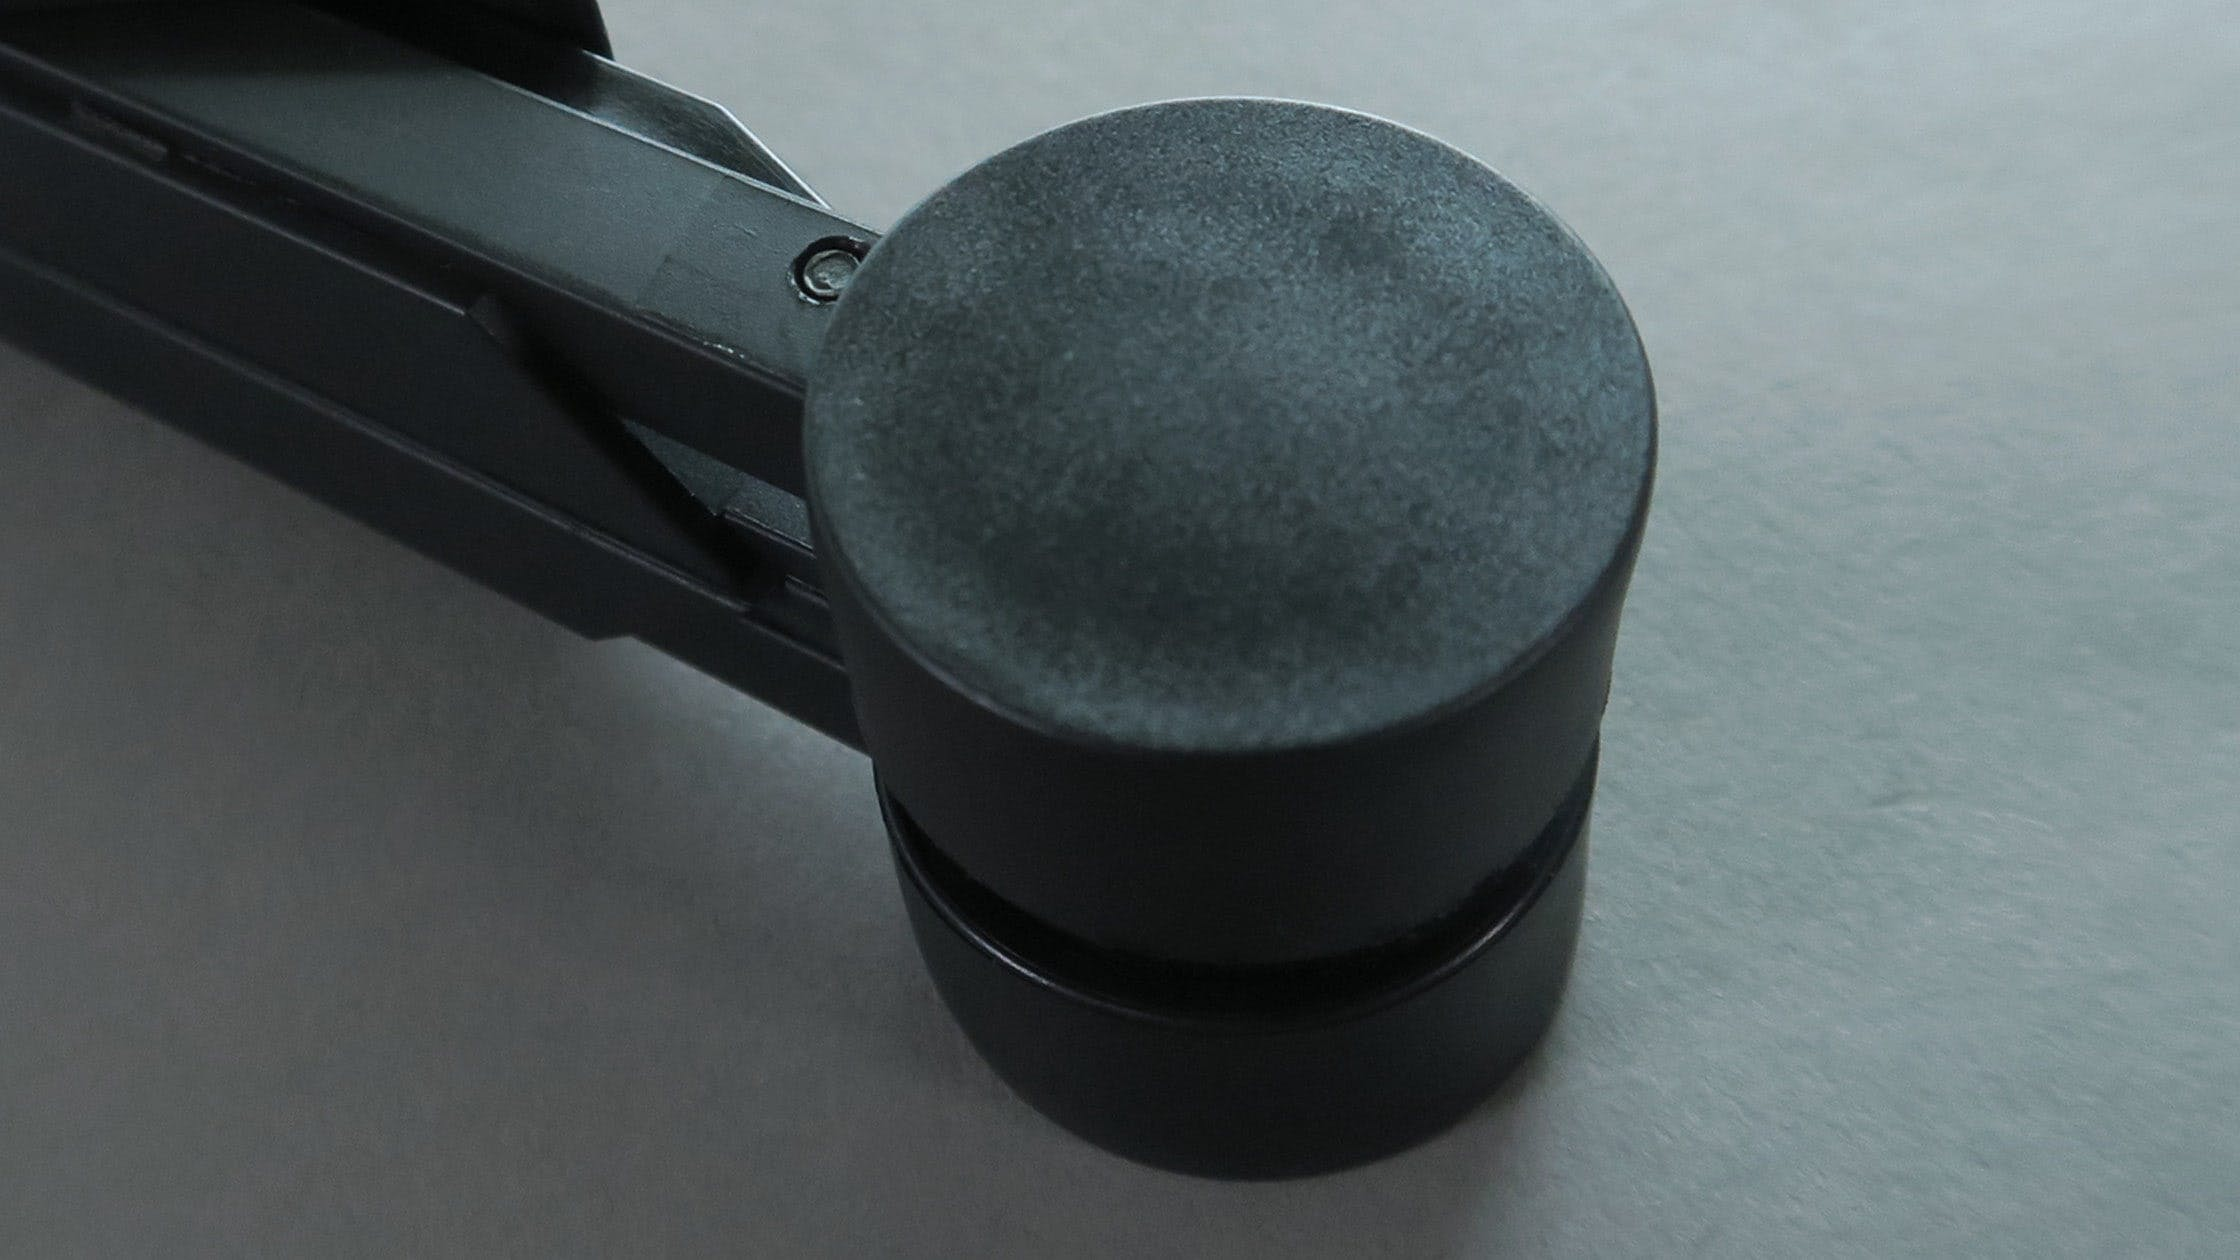 Nexstand Thin Rubber Base